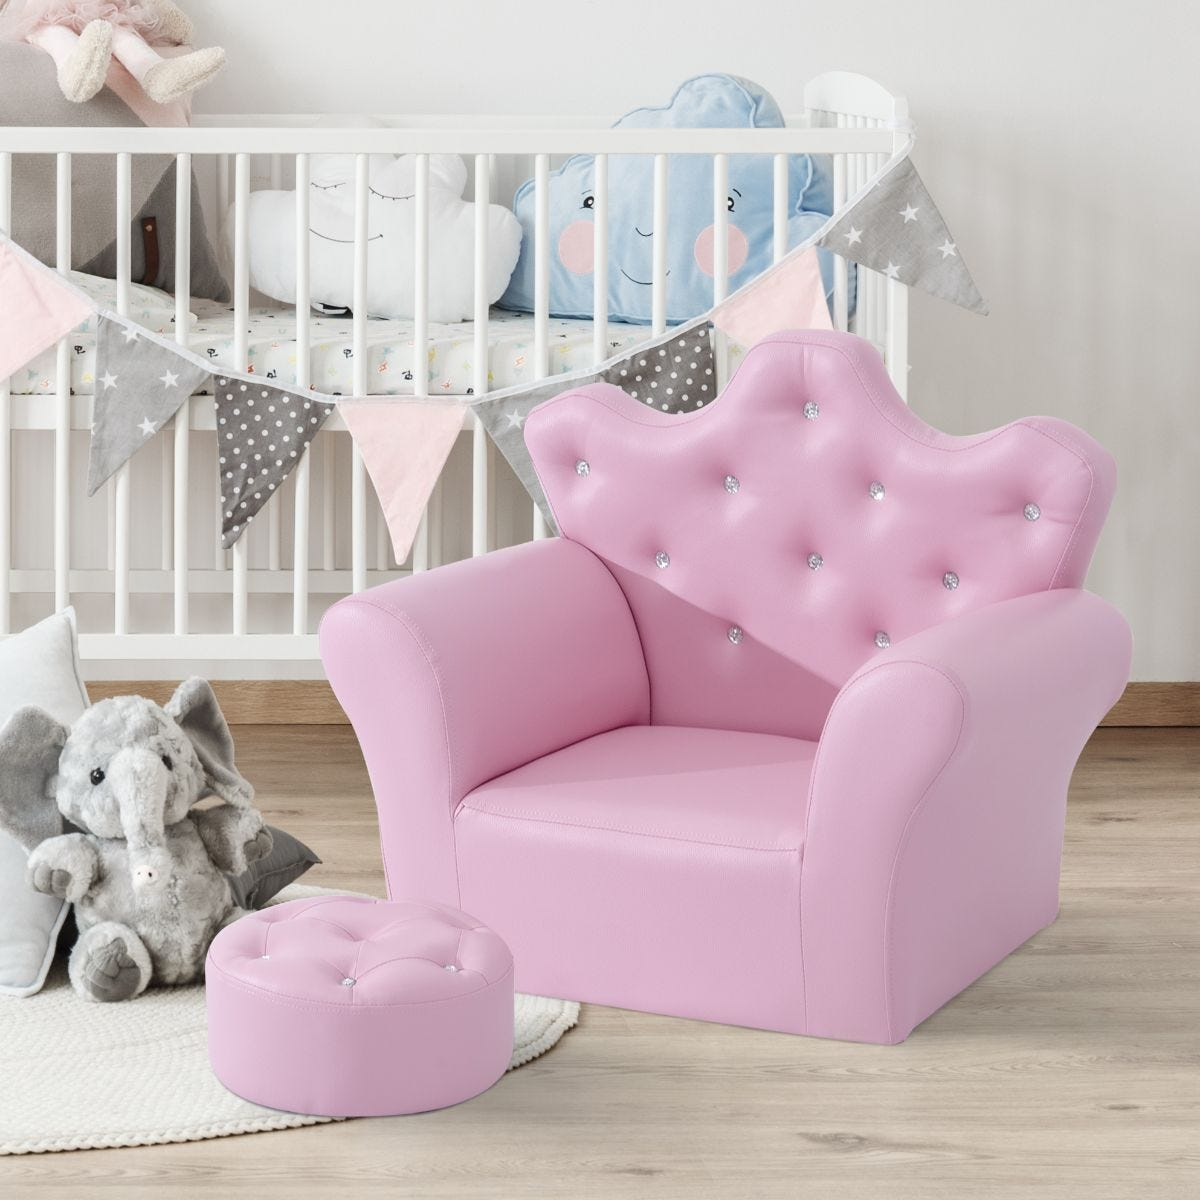 2 Piece Childs Princess Armchair And Ottoman For Ages 3 To 7 Pink